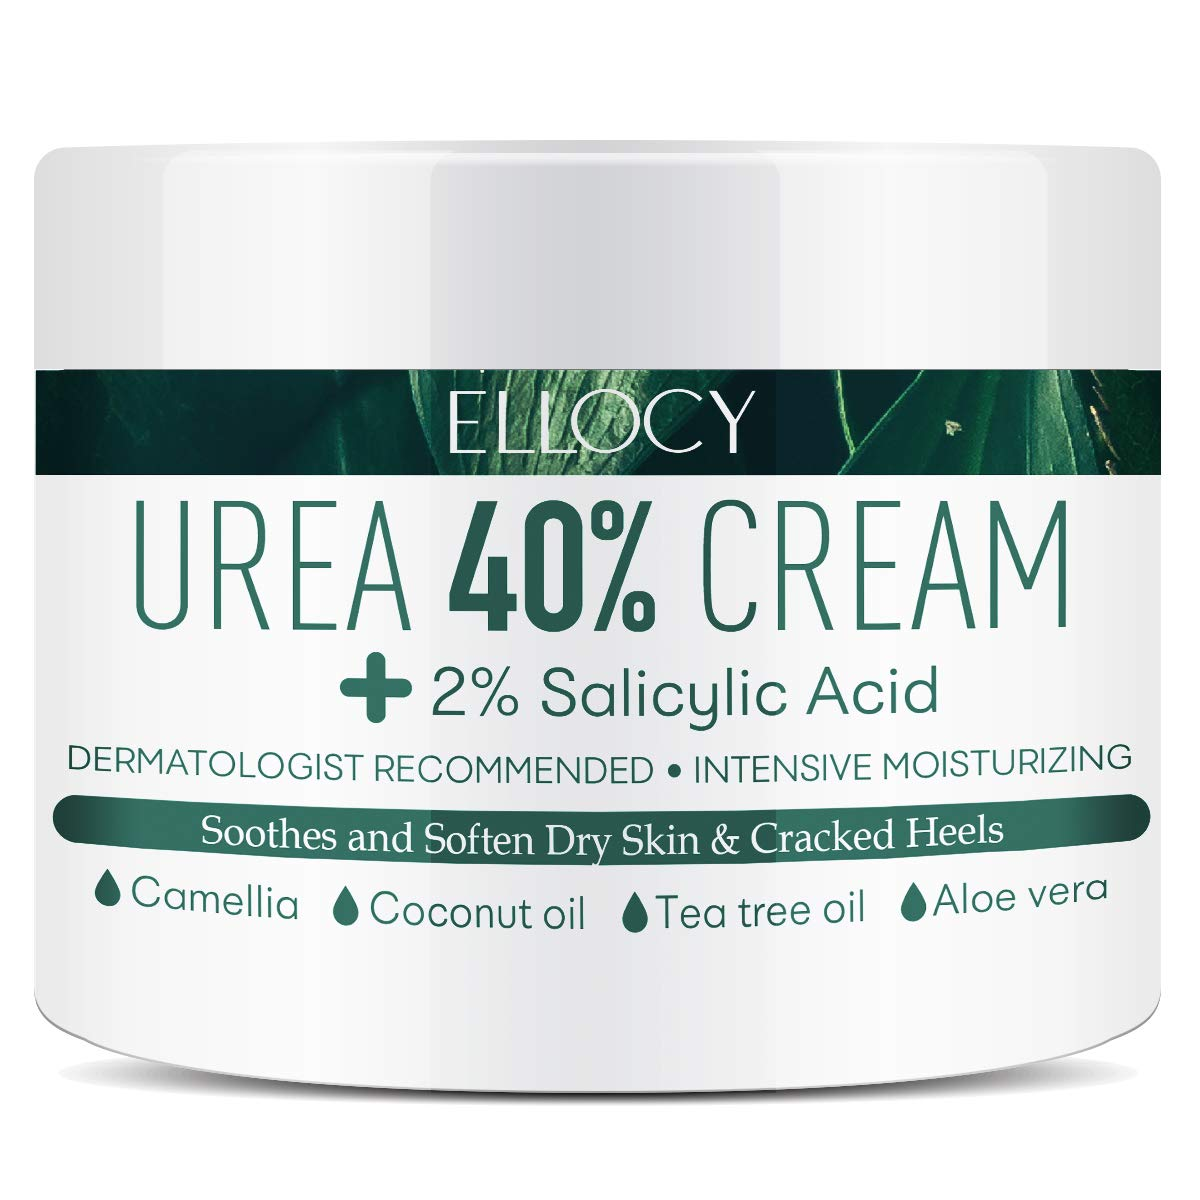 Ellocy Urea 40% Foot Cream Plus Salicylic Acid 4.2 Oz, Best Callus Remover - Moisturizes and Rehydrates Feet, Knees & Elbows - For Thick, Cracked, Rough, Dead & Dry Skin